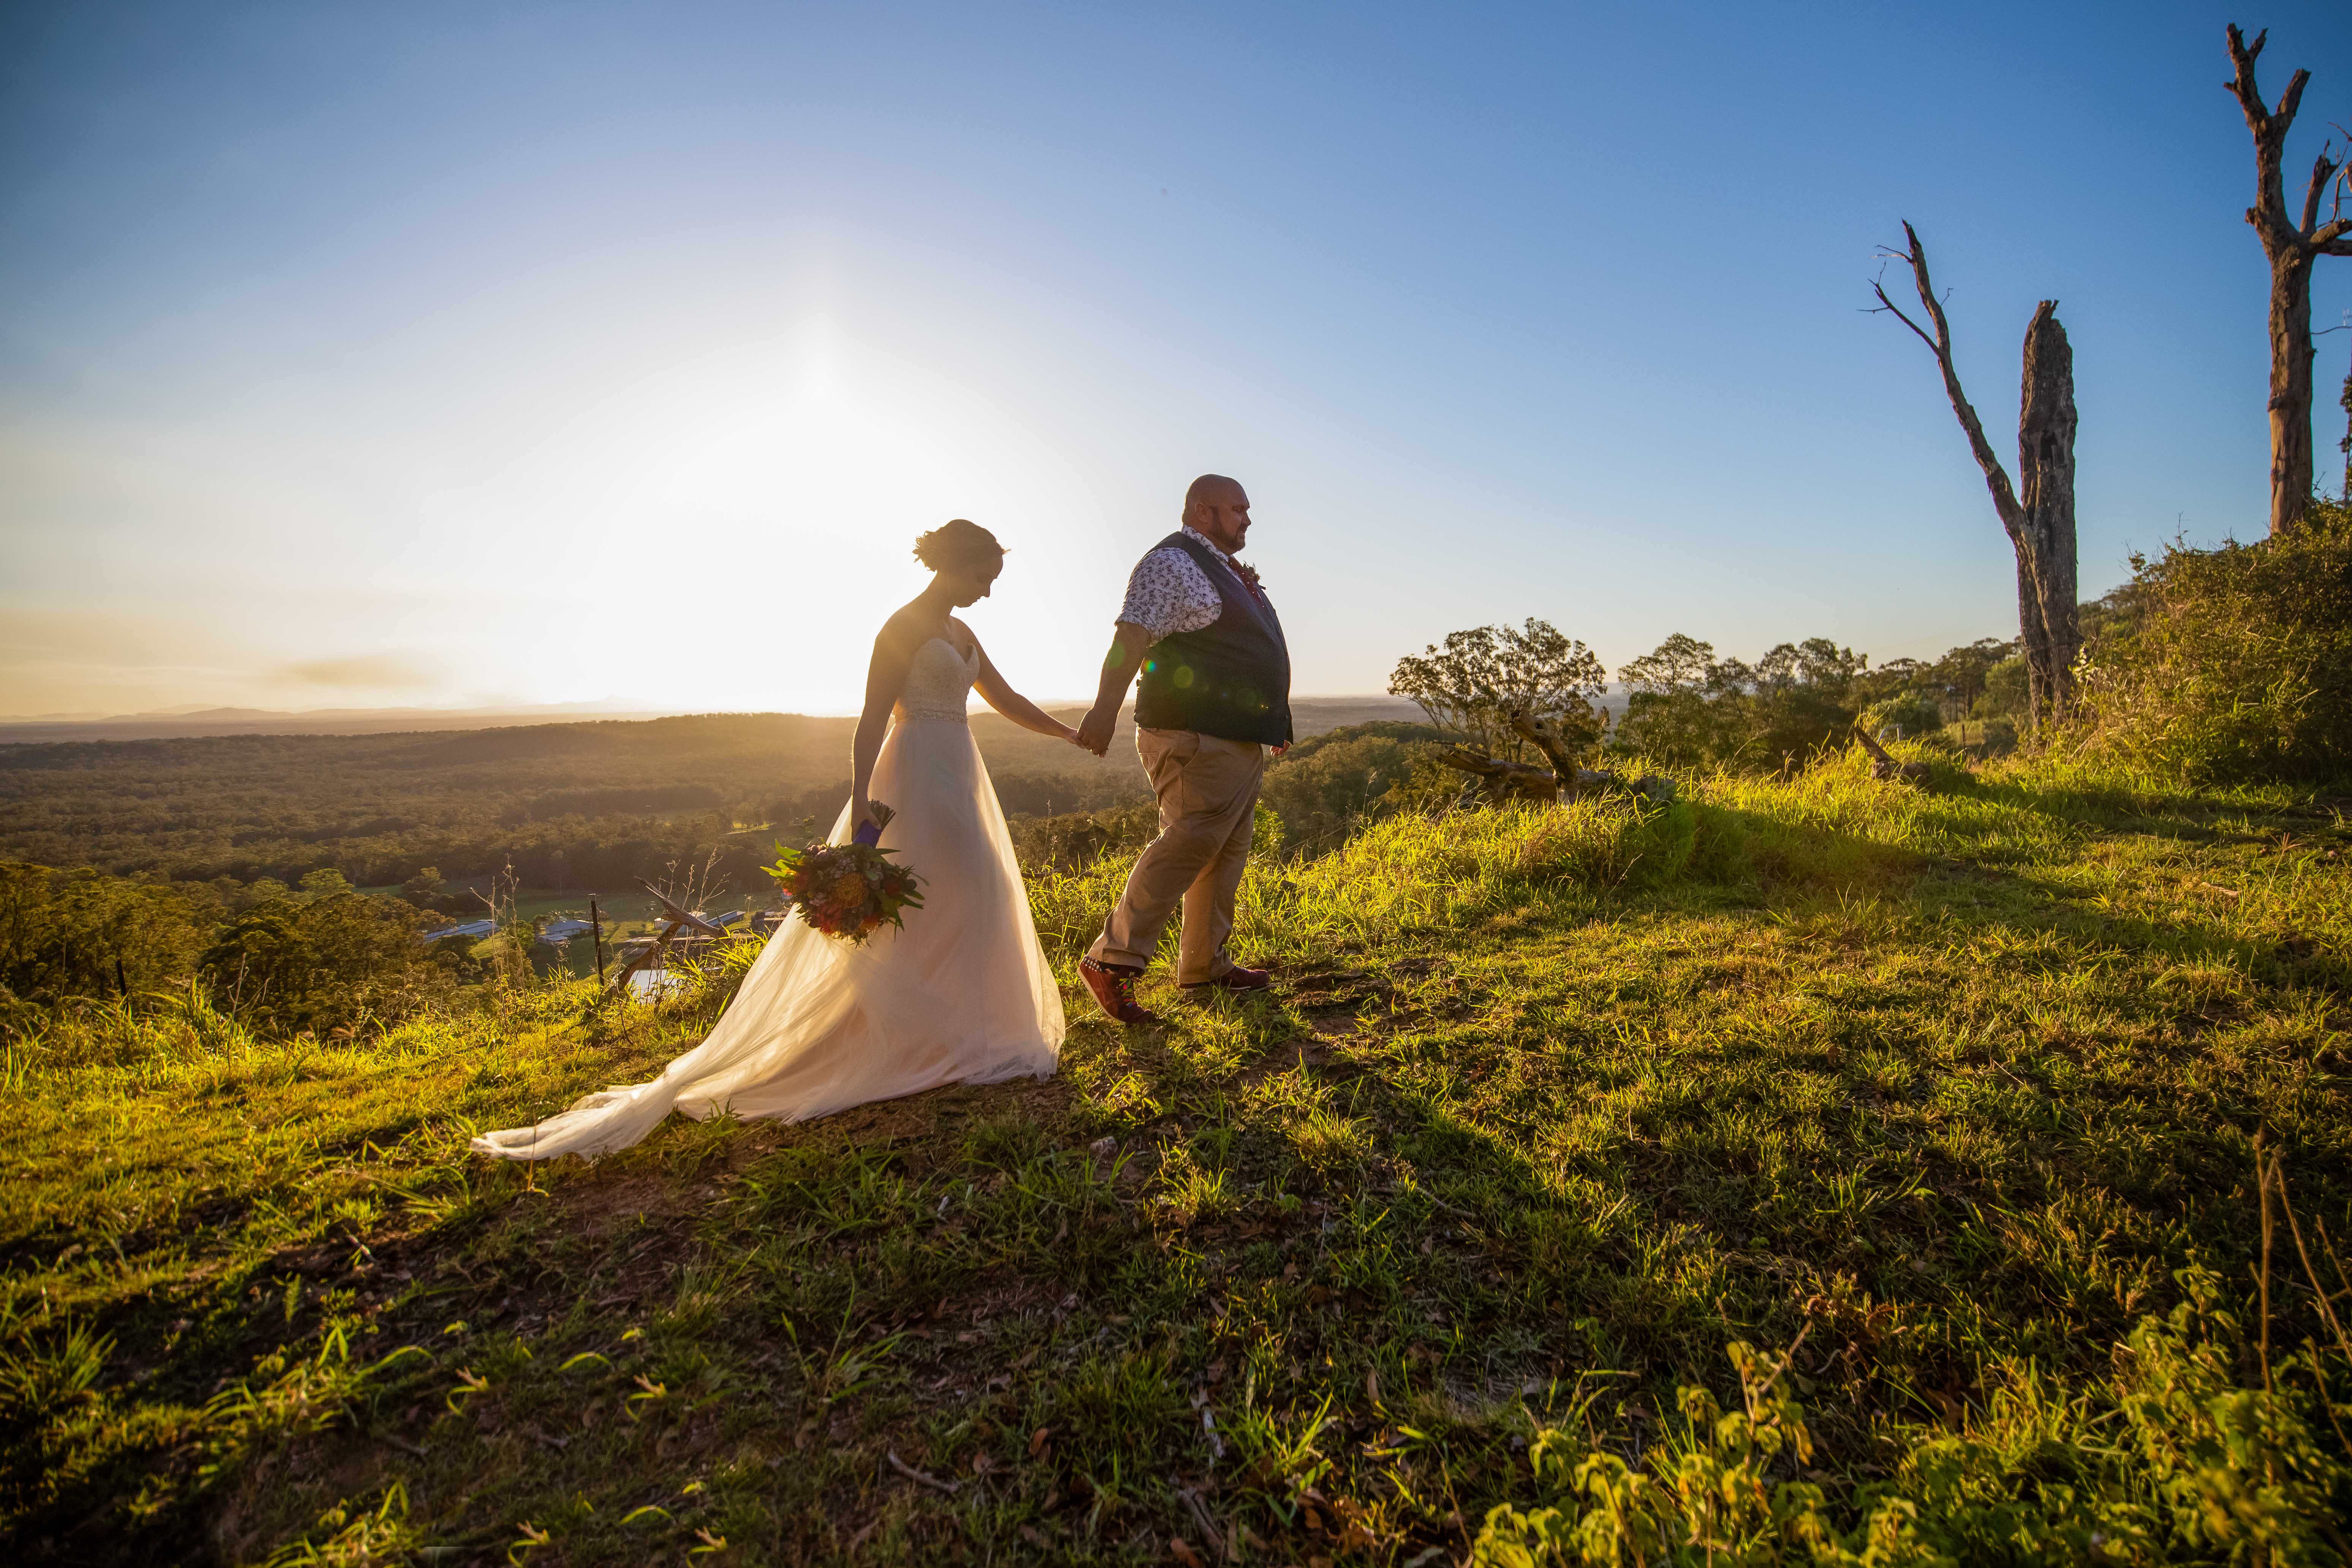 WEDDING - BRIDE - GROOM - SUNSET - WEDDING PHOTO - WEDDING DRESS - DESTINATION PHOTOGRAPHER